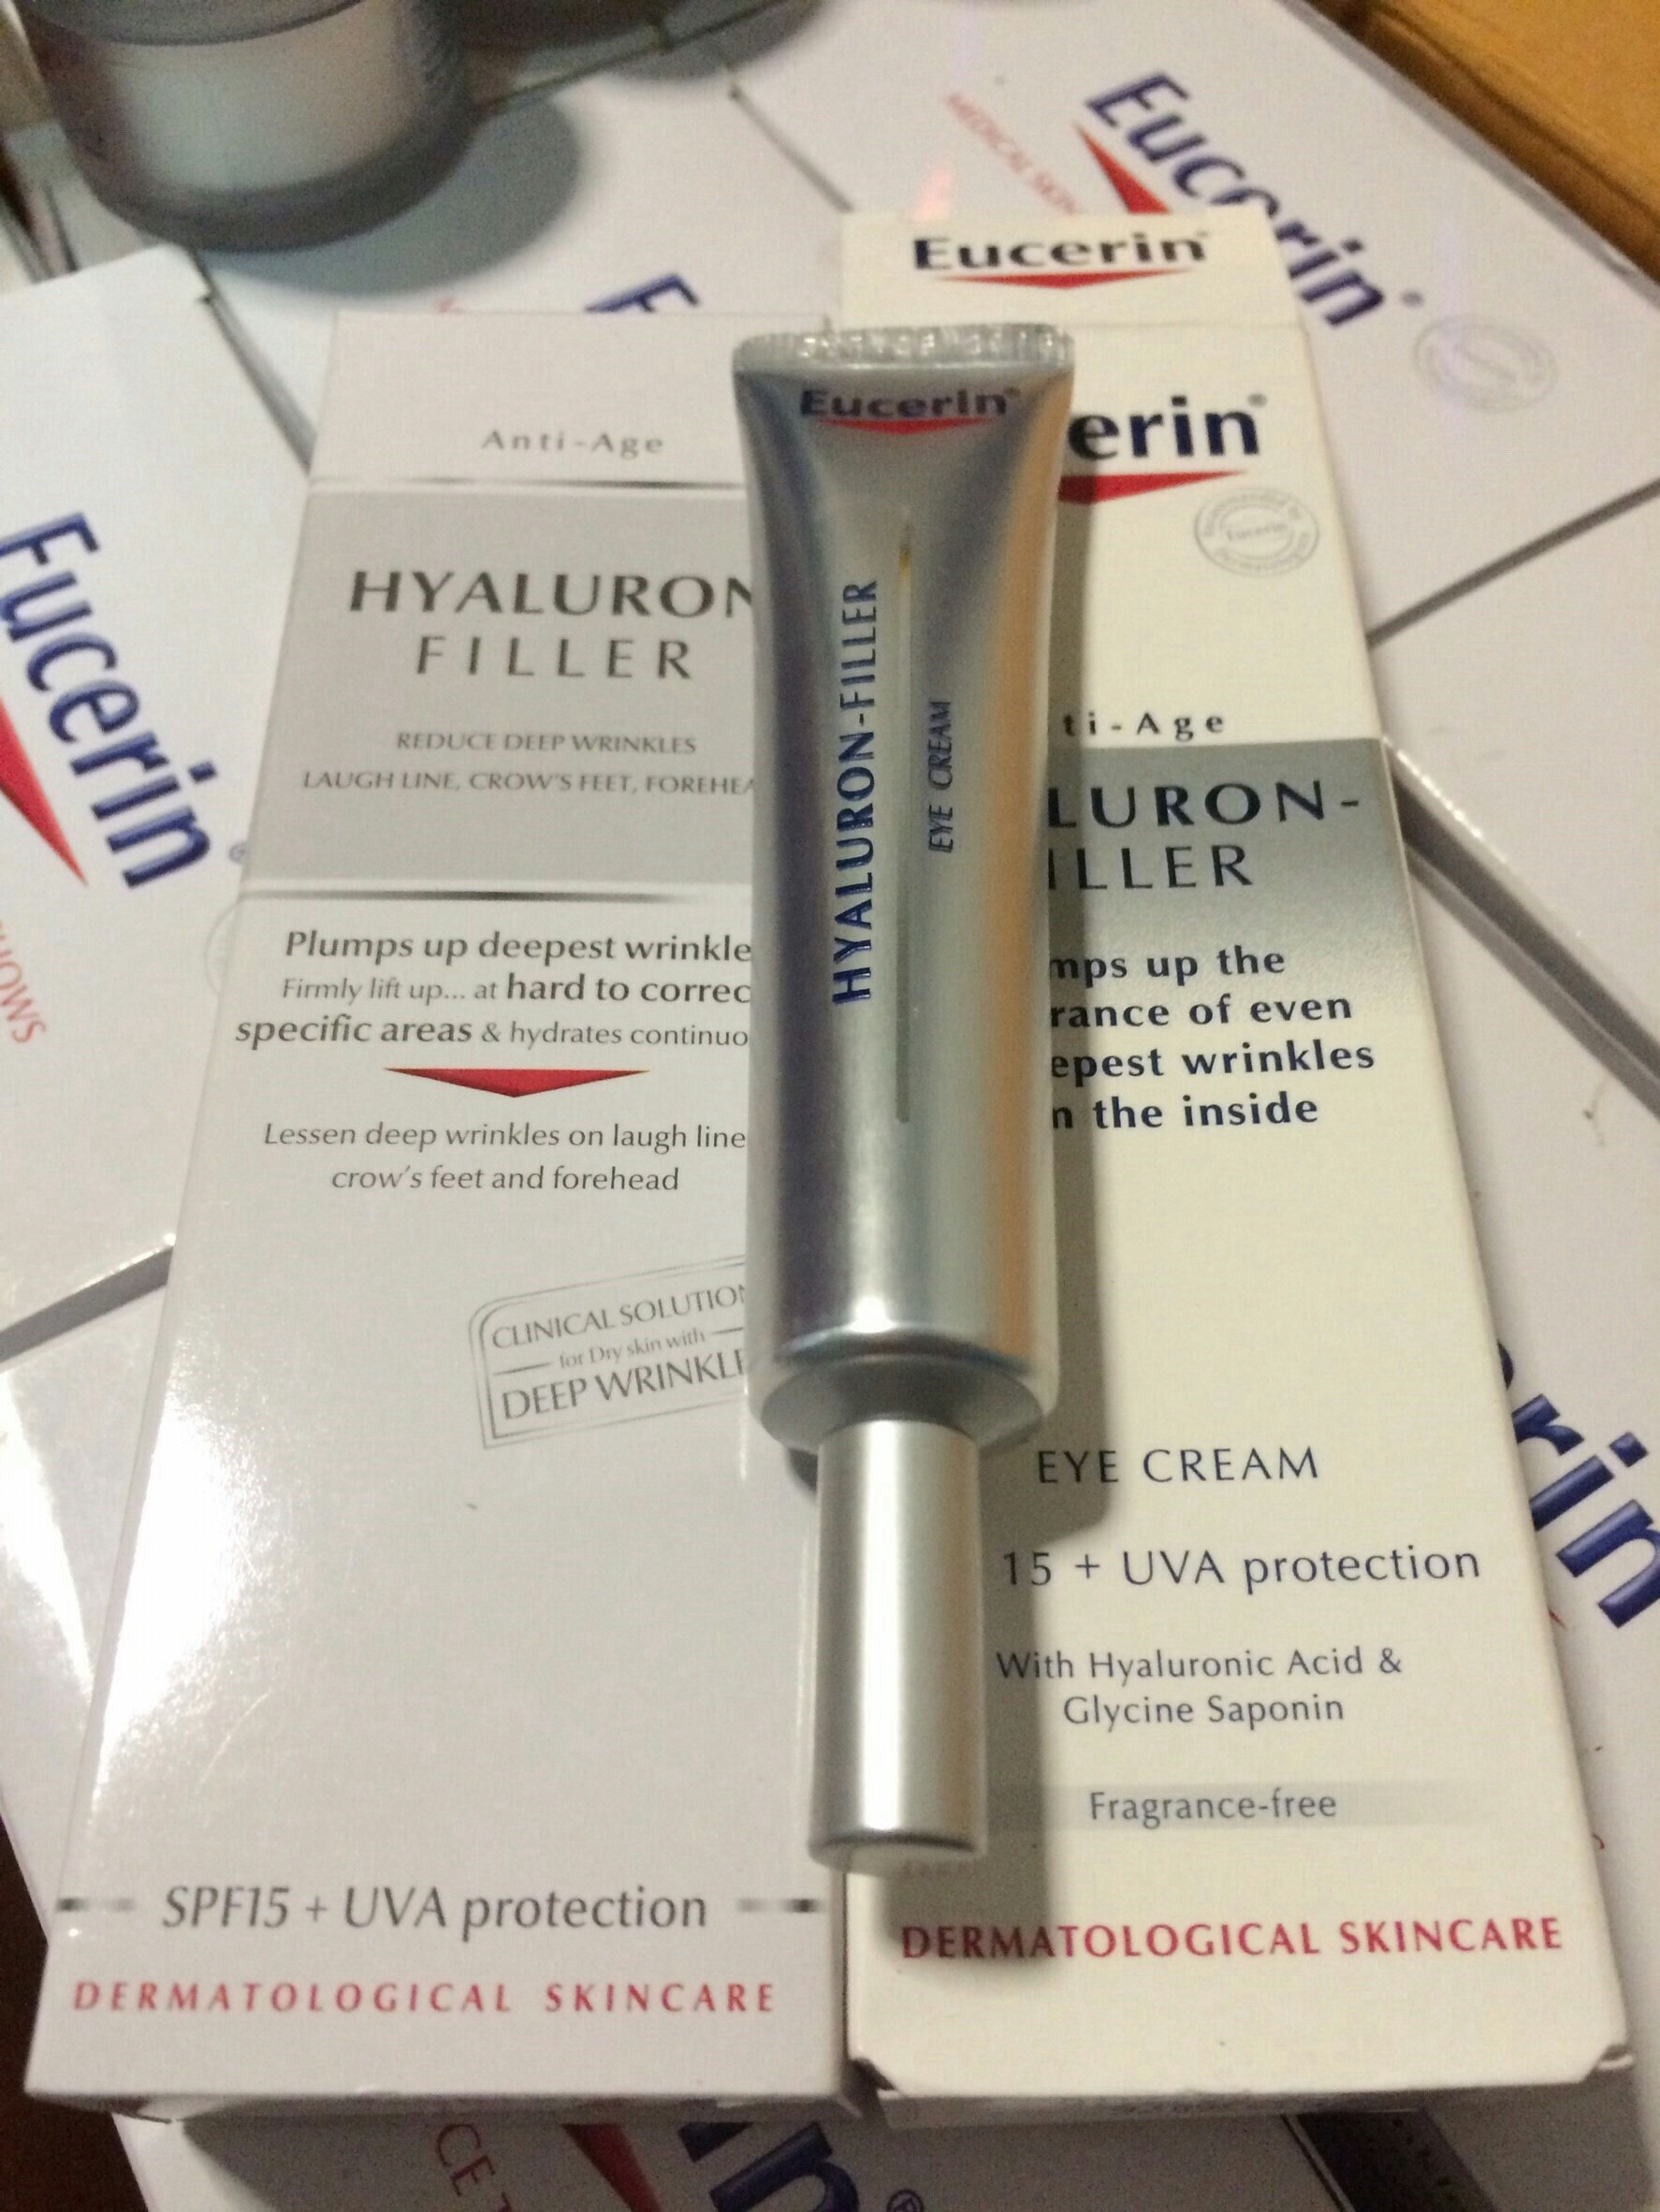 #Eucerin Hyaluron Filler Eye Cream